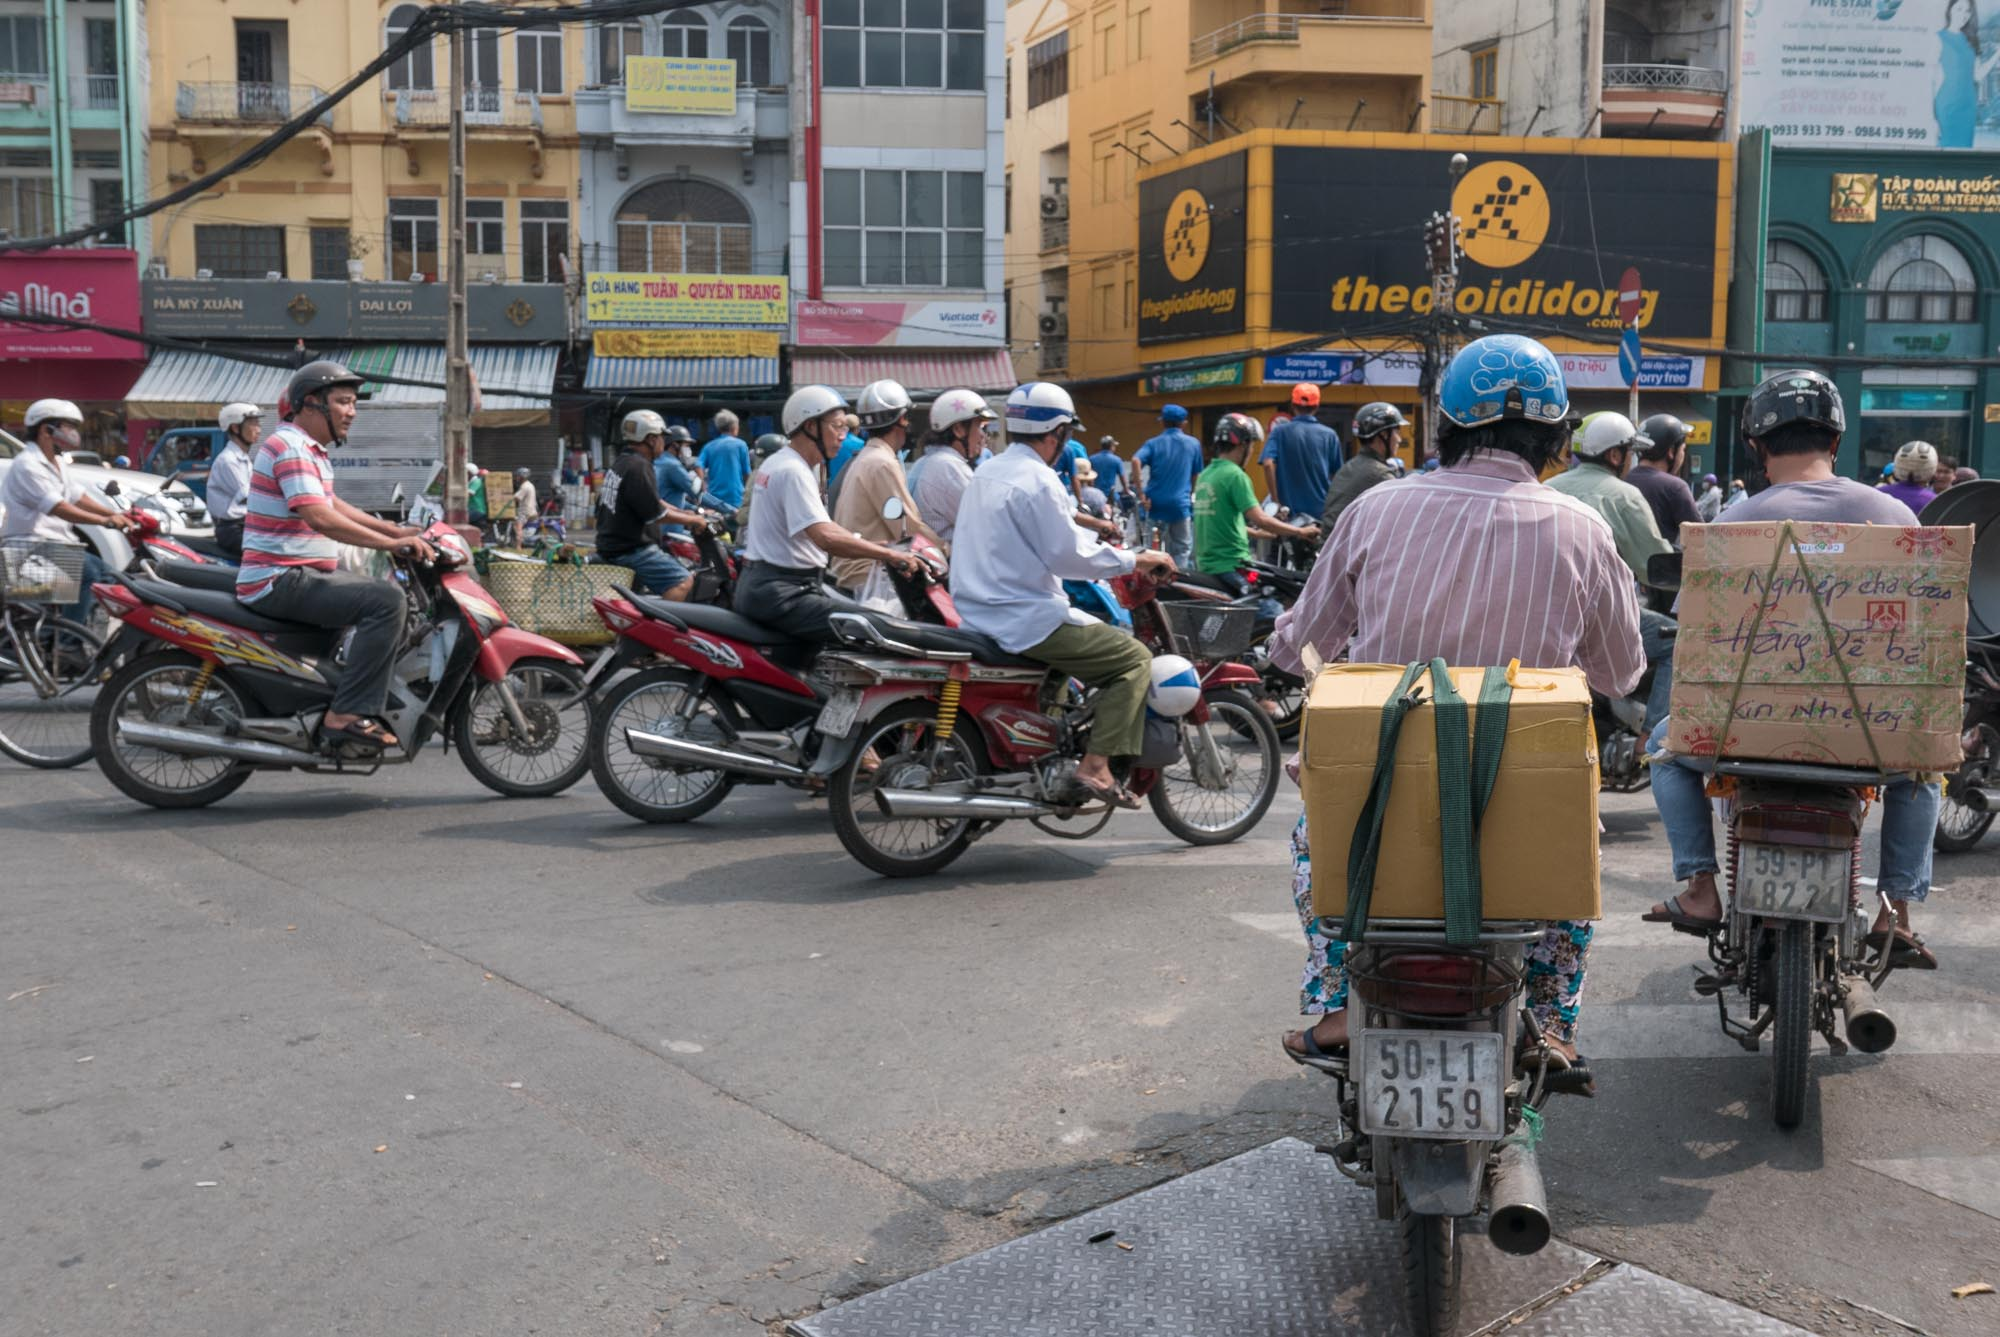 Dozens of bikes fill an intersection in Ho Chi Minh.